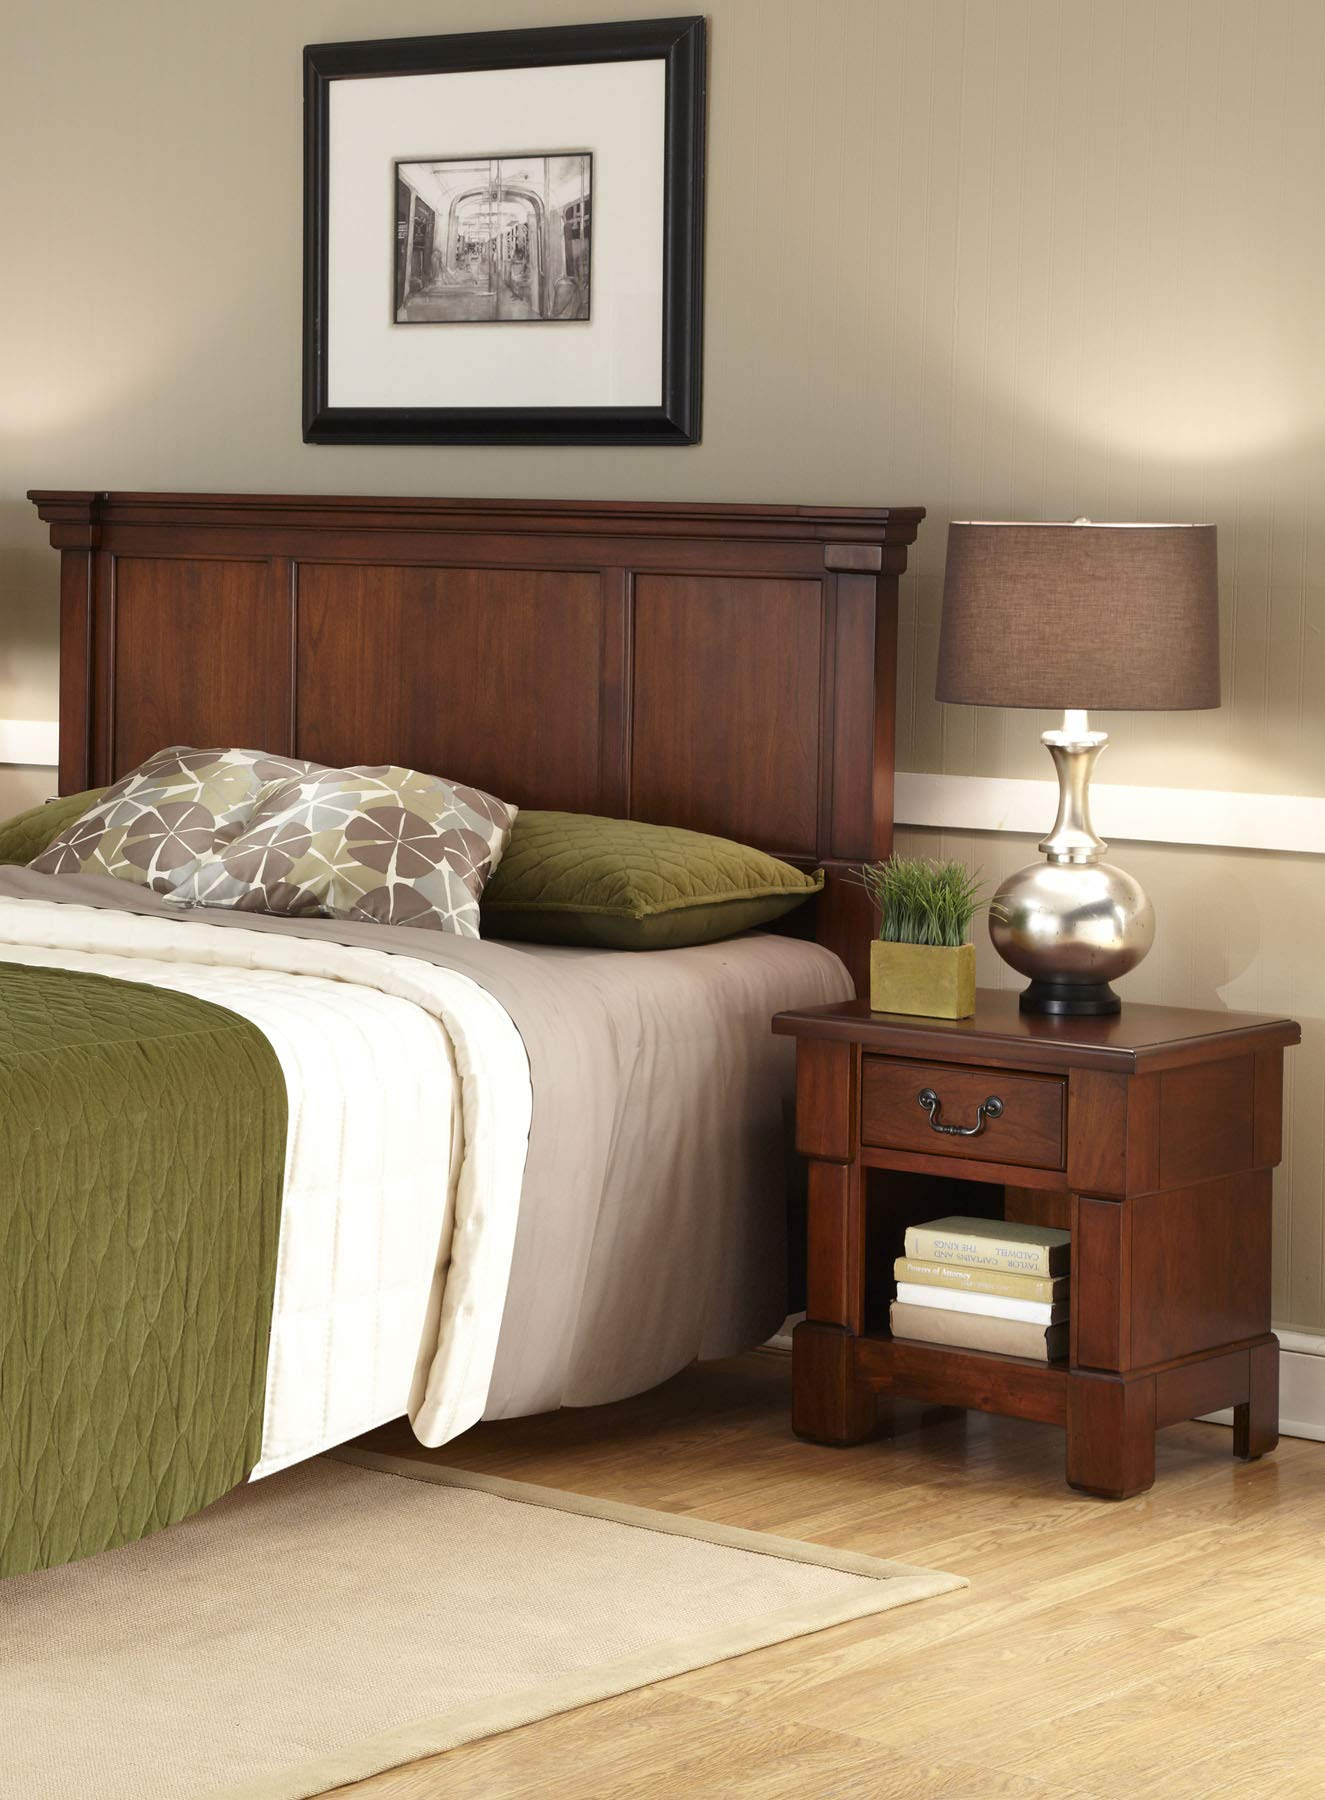 Aspen Rustic Cherry Queen Headboard by Home Styles by Home Styles